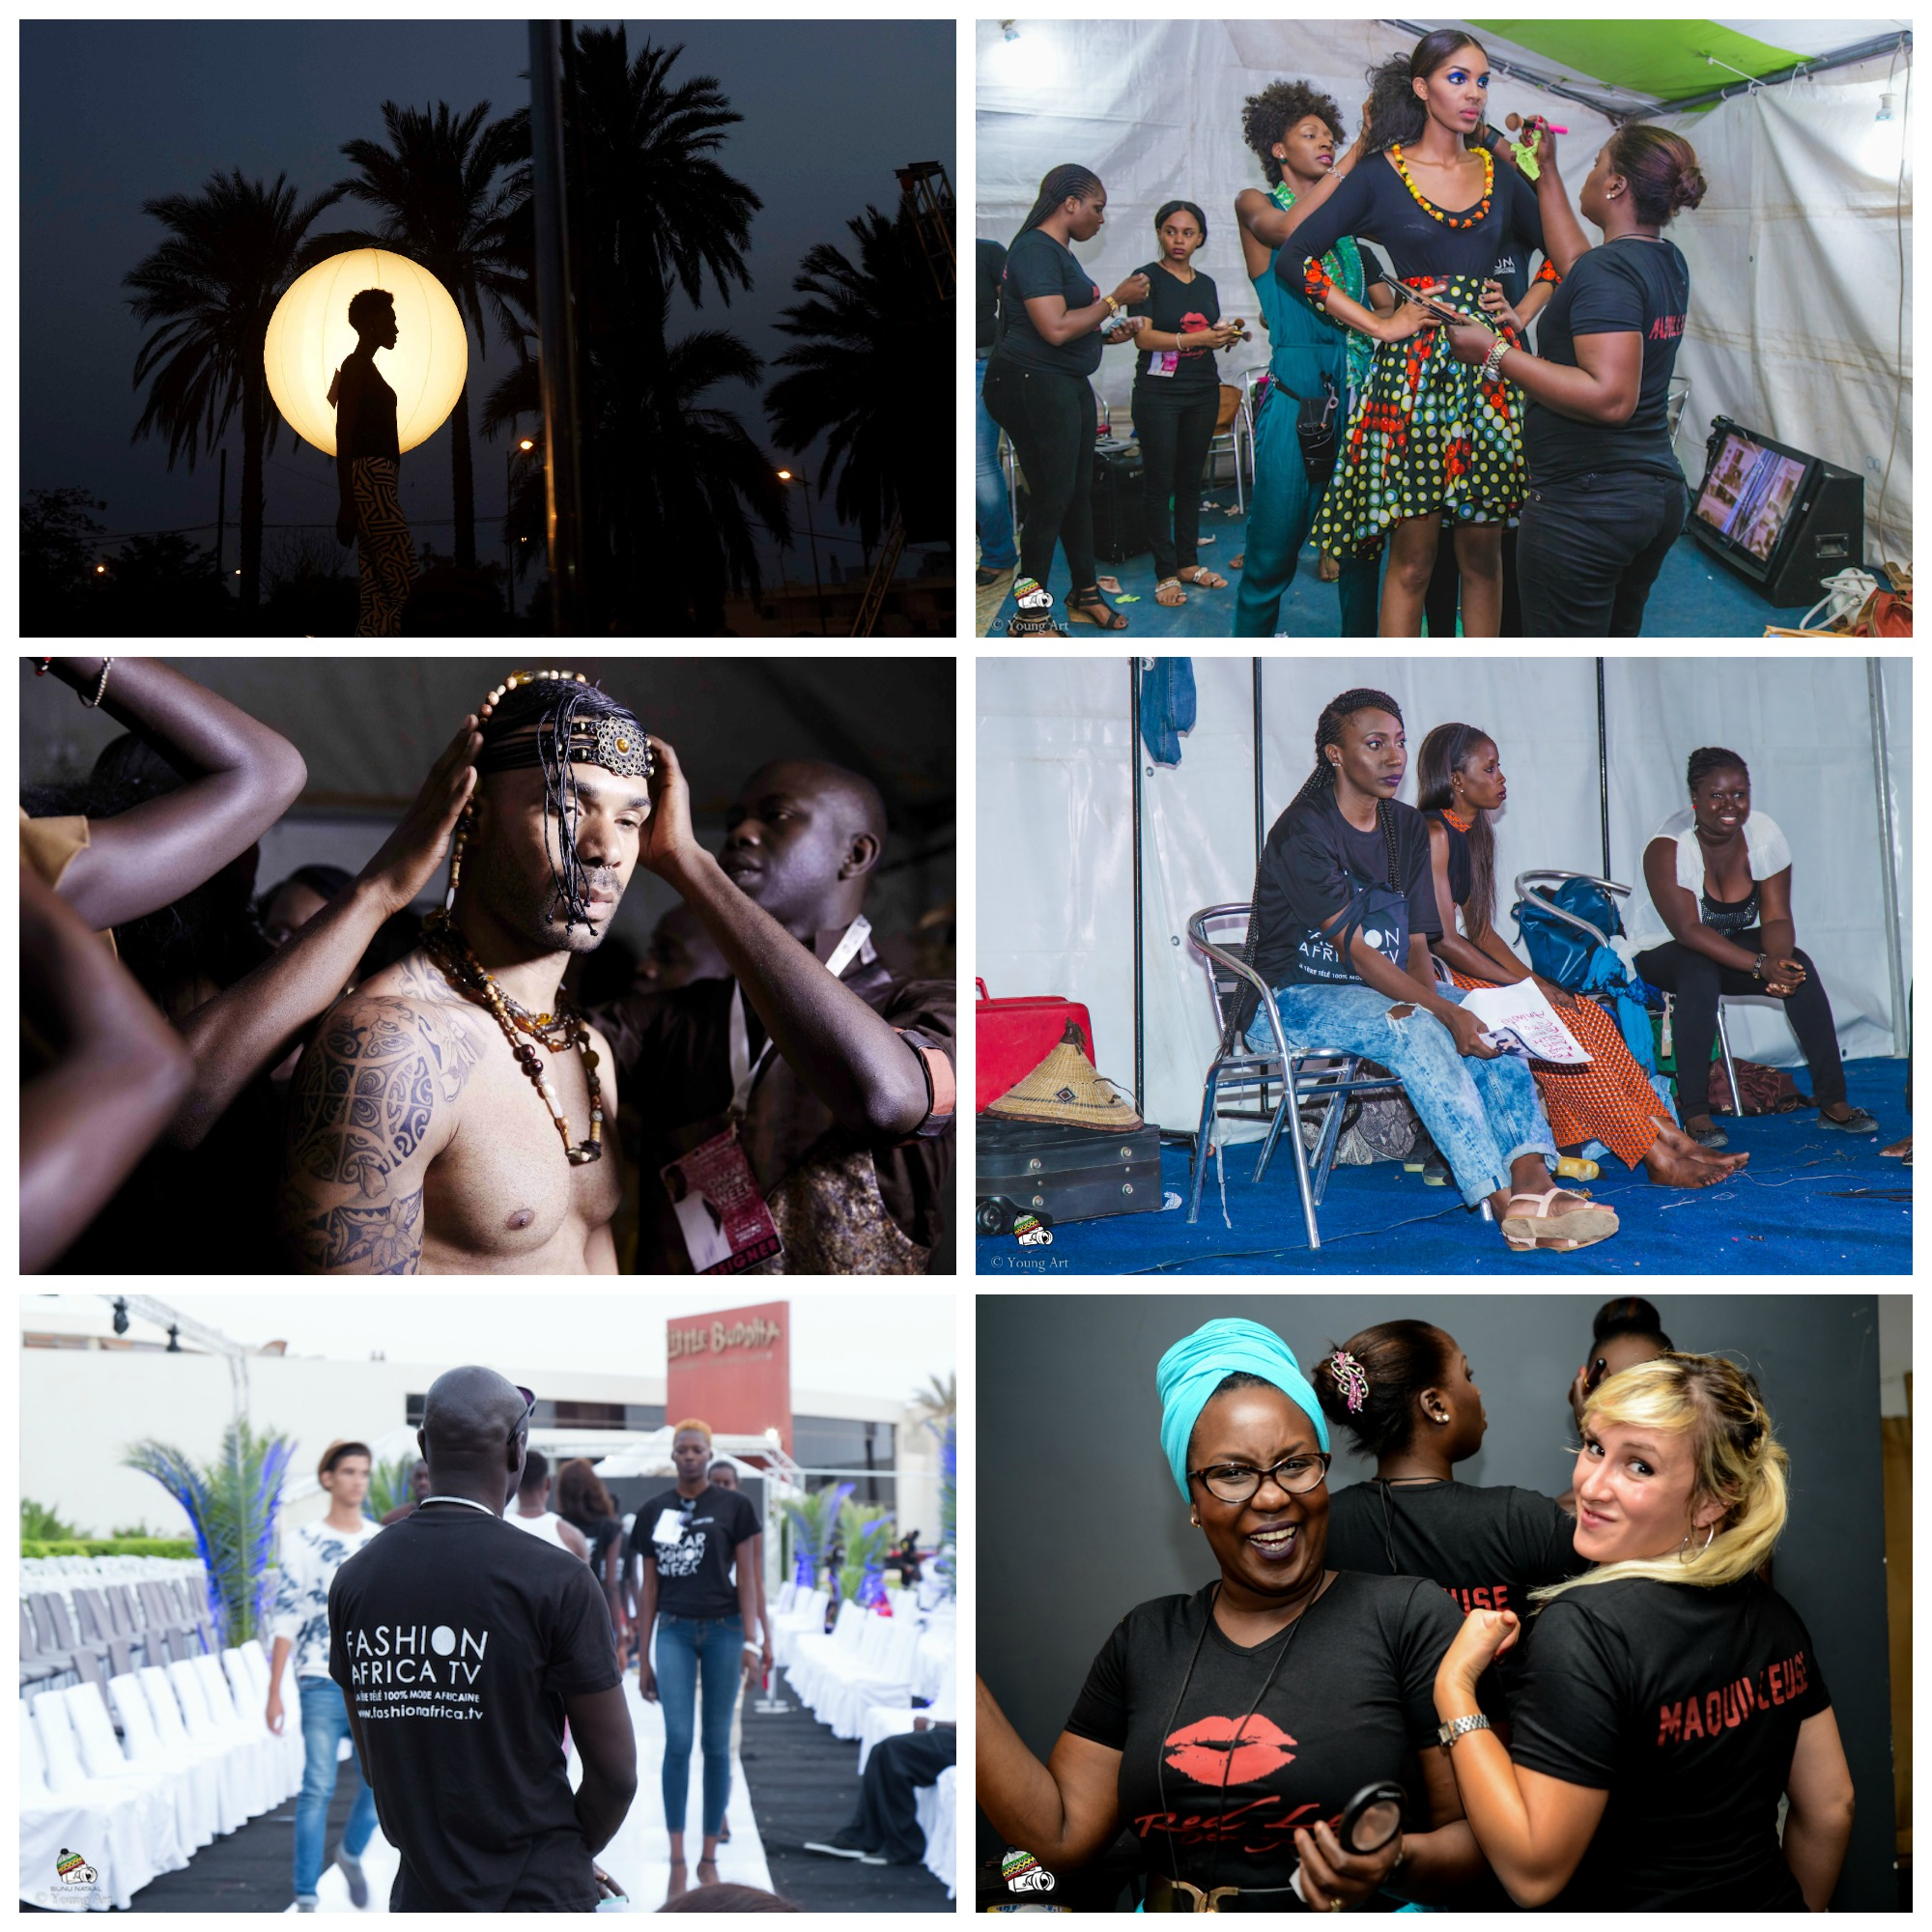 Dakar Fashion Week 2015